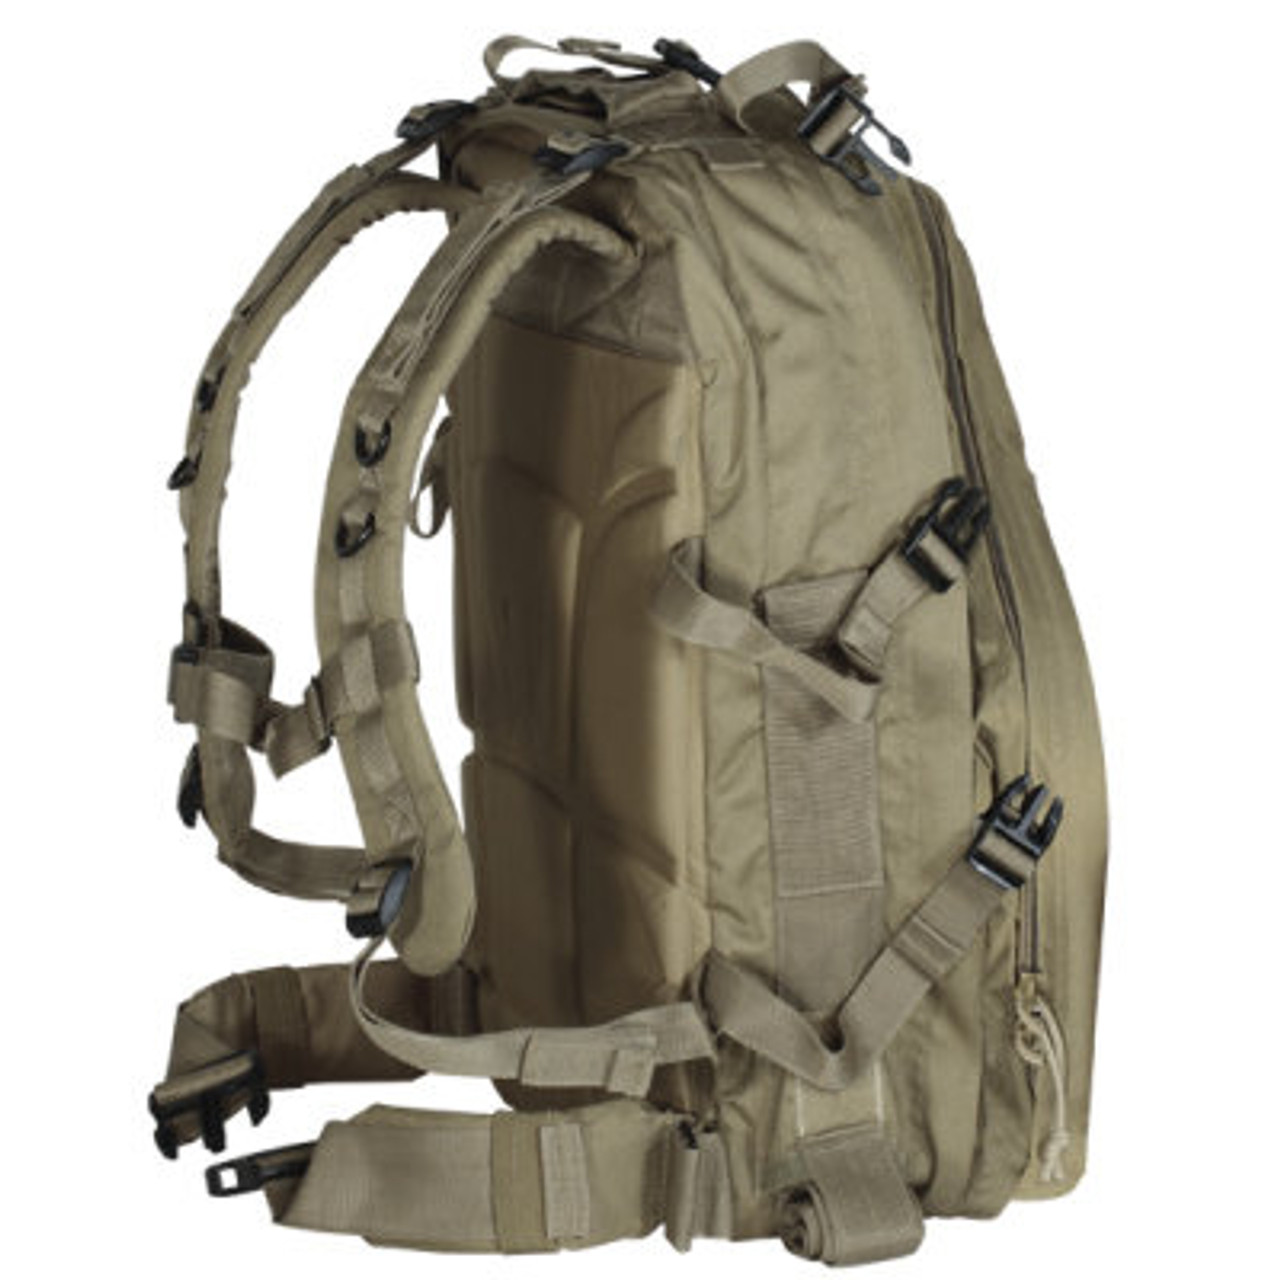 STOMP Medical First Aid Backpack